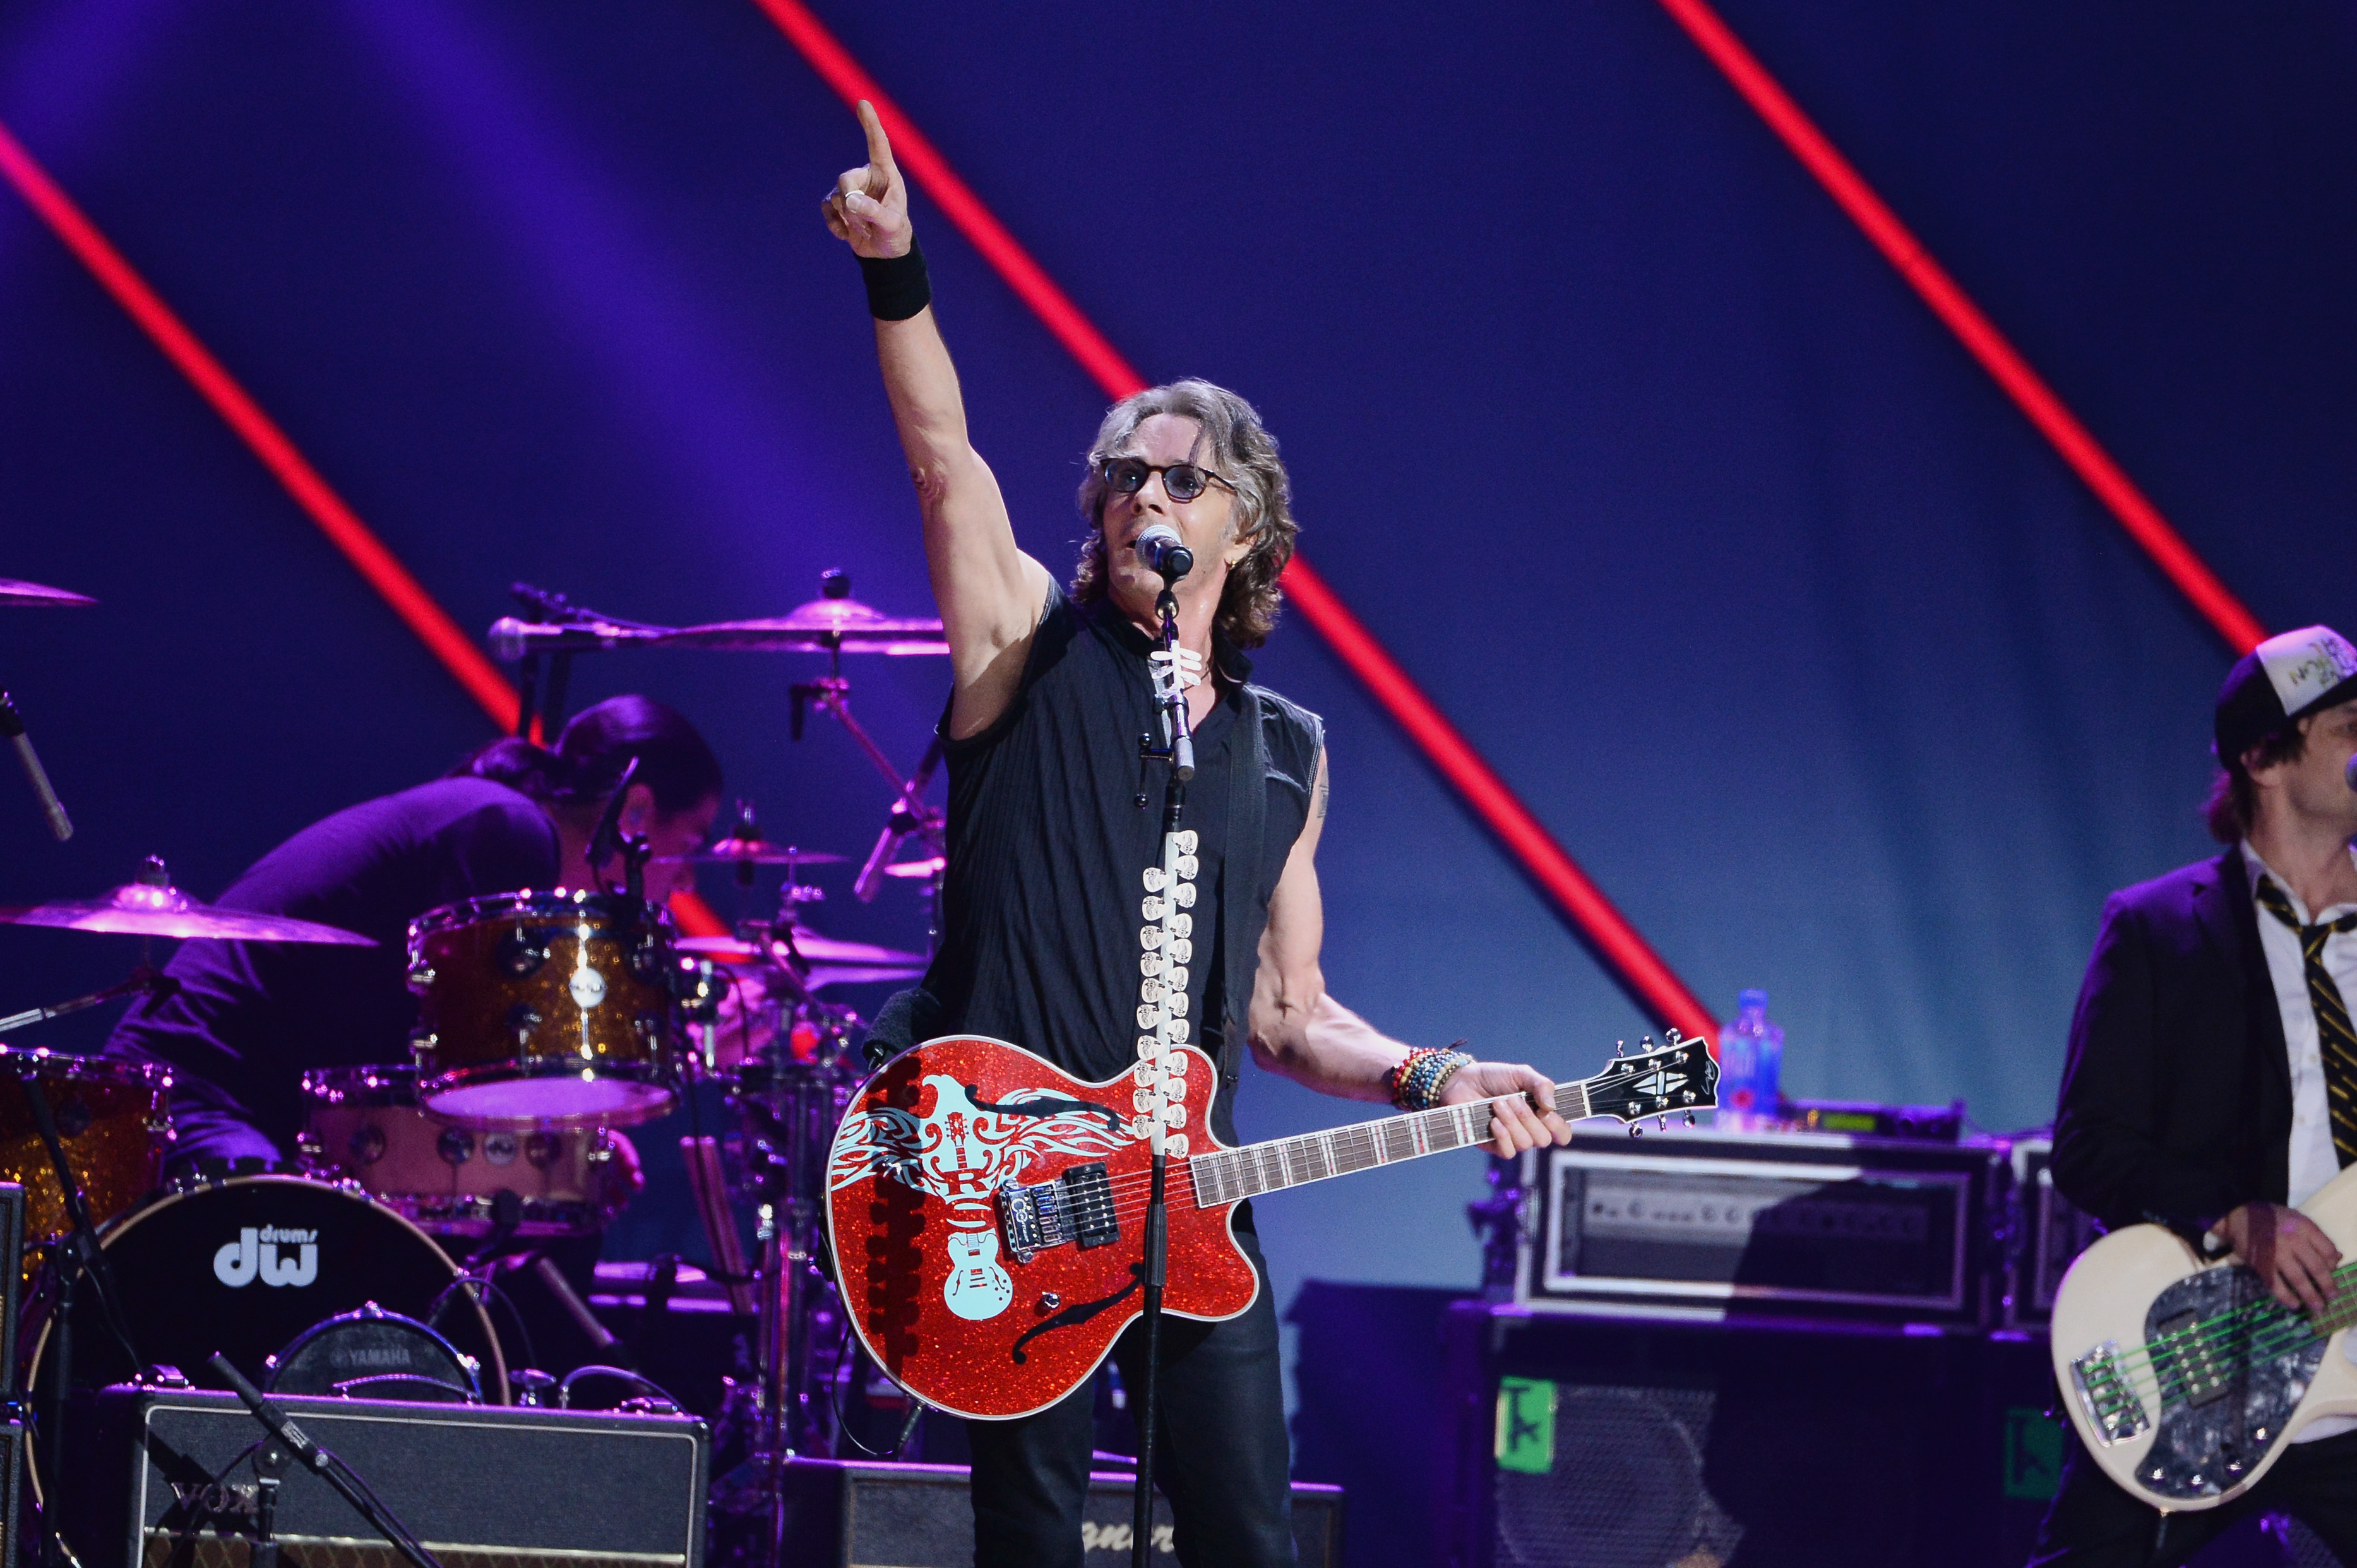 Rick Springfield performs during the iHeart80s Party on February 20, 2016. (Photo by Frazer Harrison/Getty)